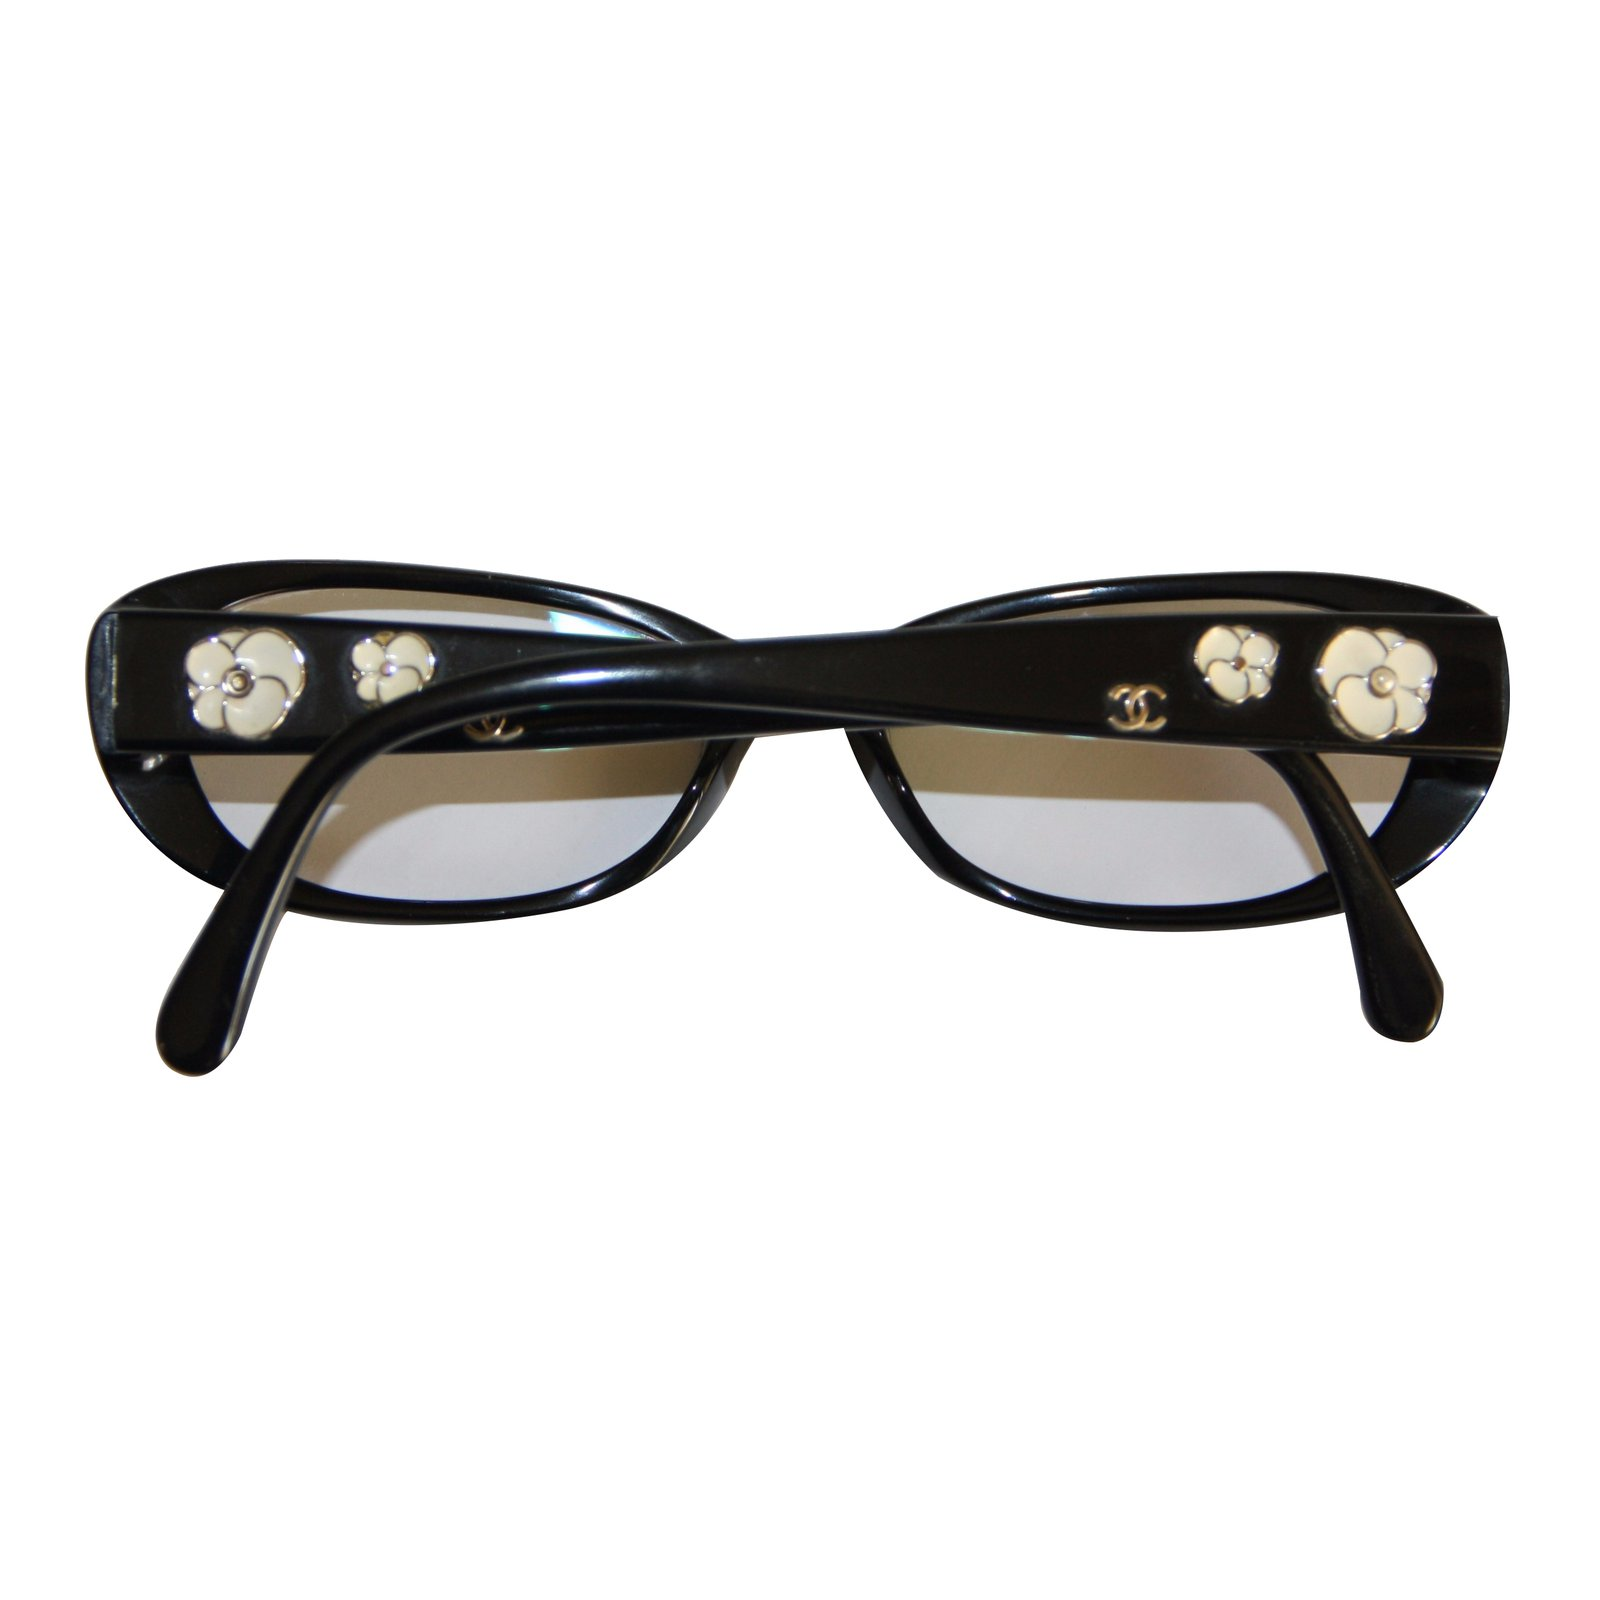 Reading Glasses Sunglasses  chanel chanel reading glasses sunglasses plastic black white ref